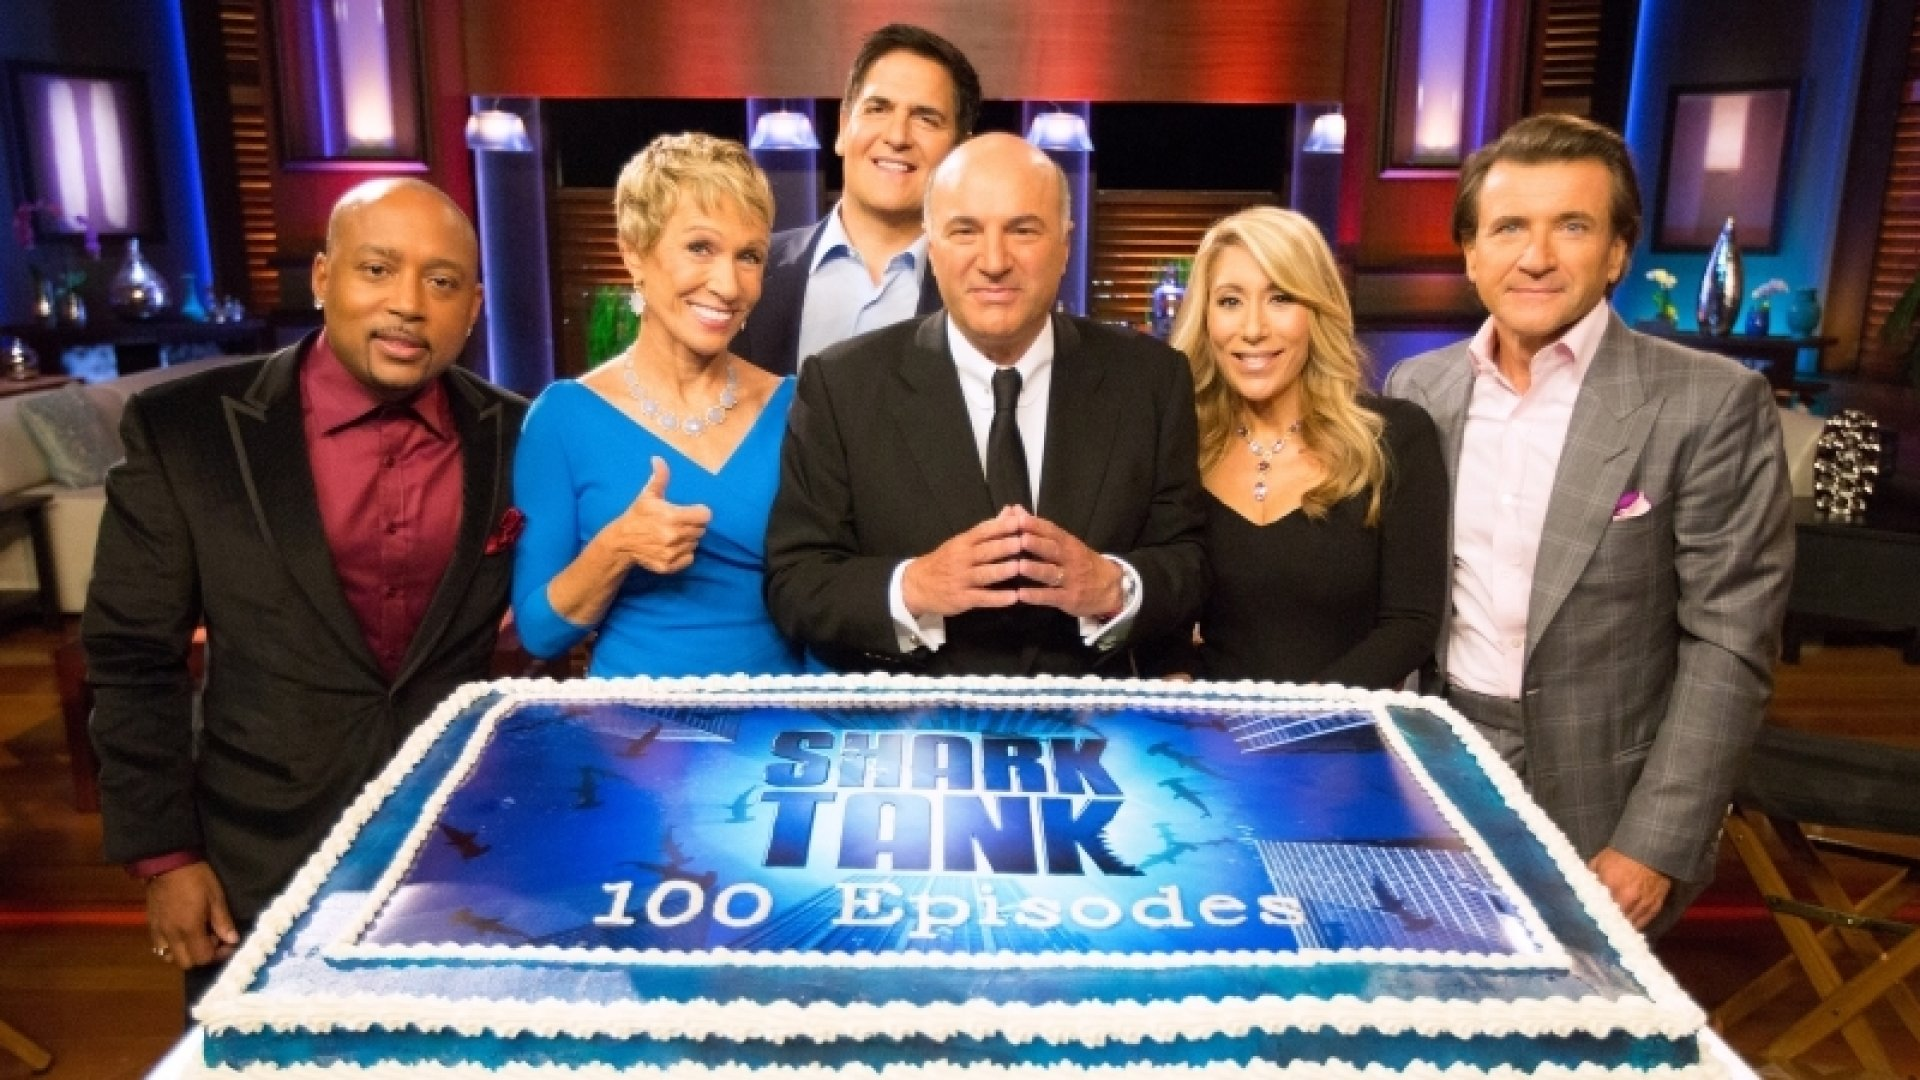 20 Quotes From the Two Women of 'Shark Tank'